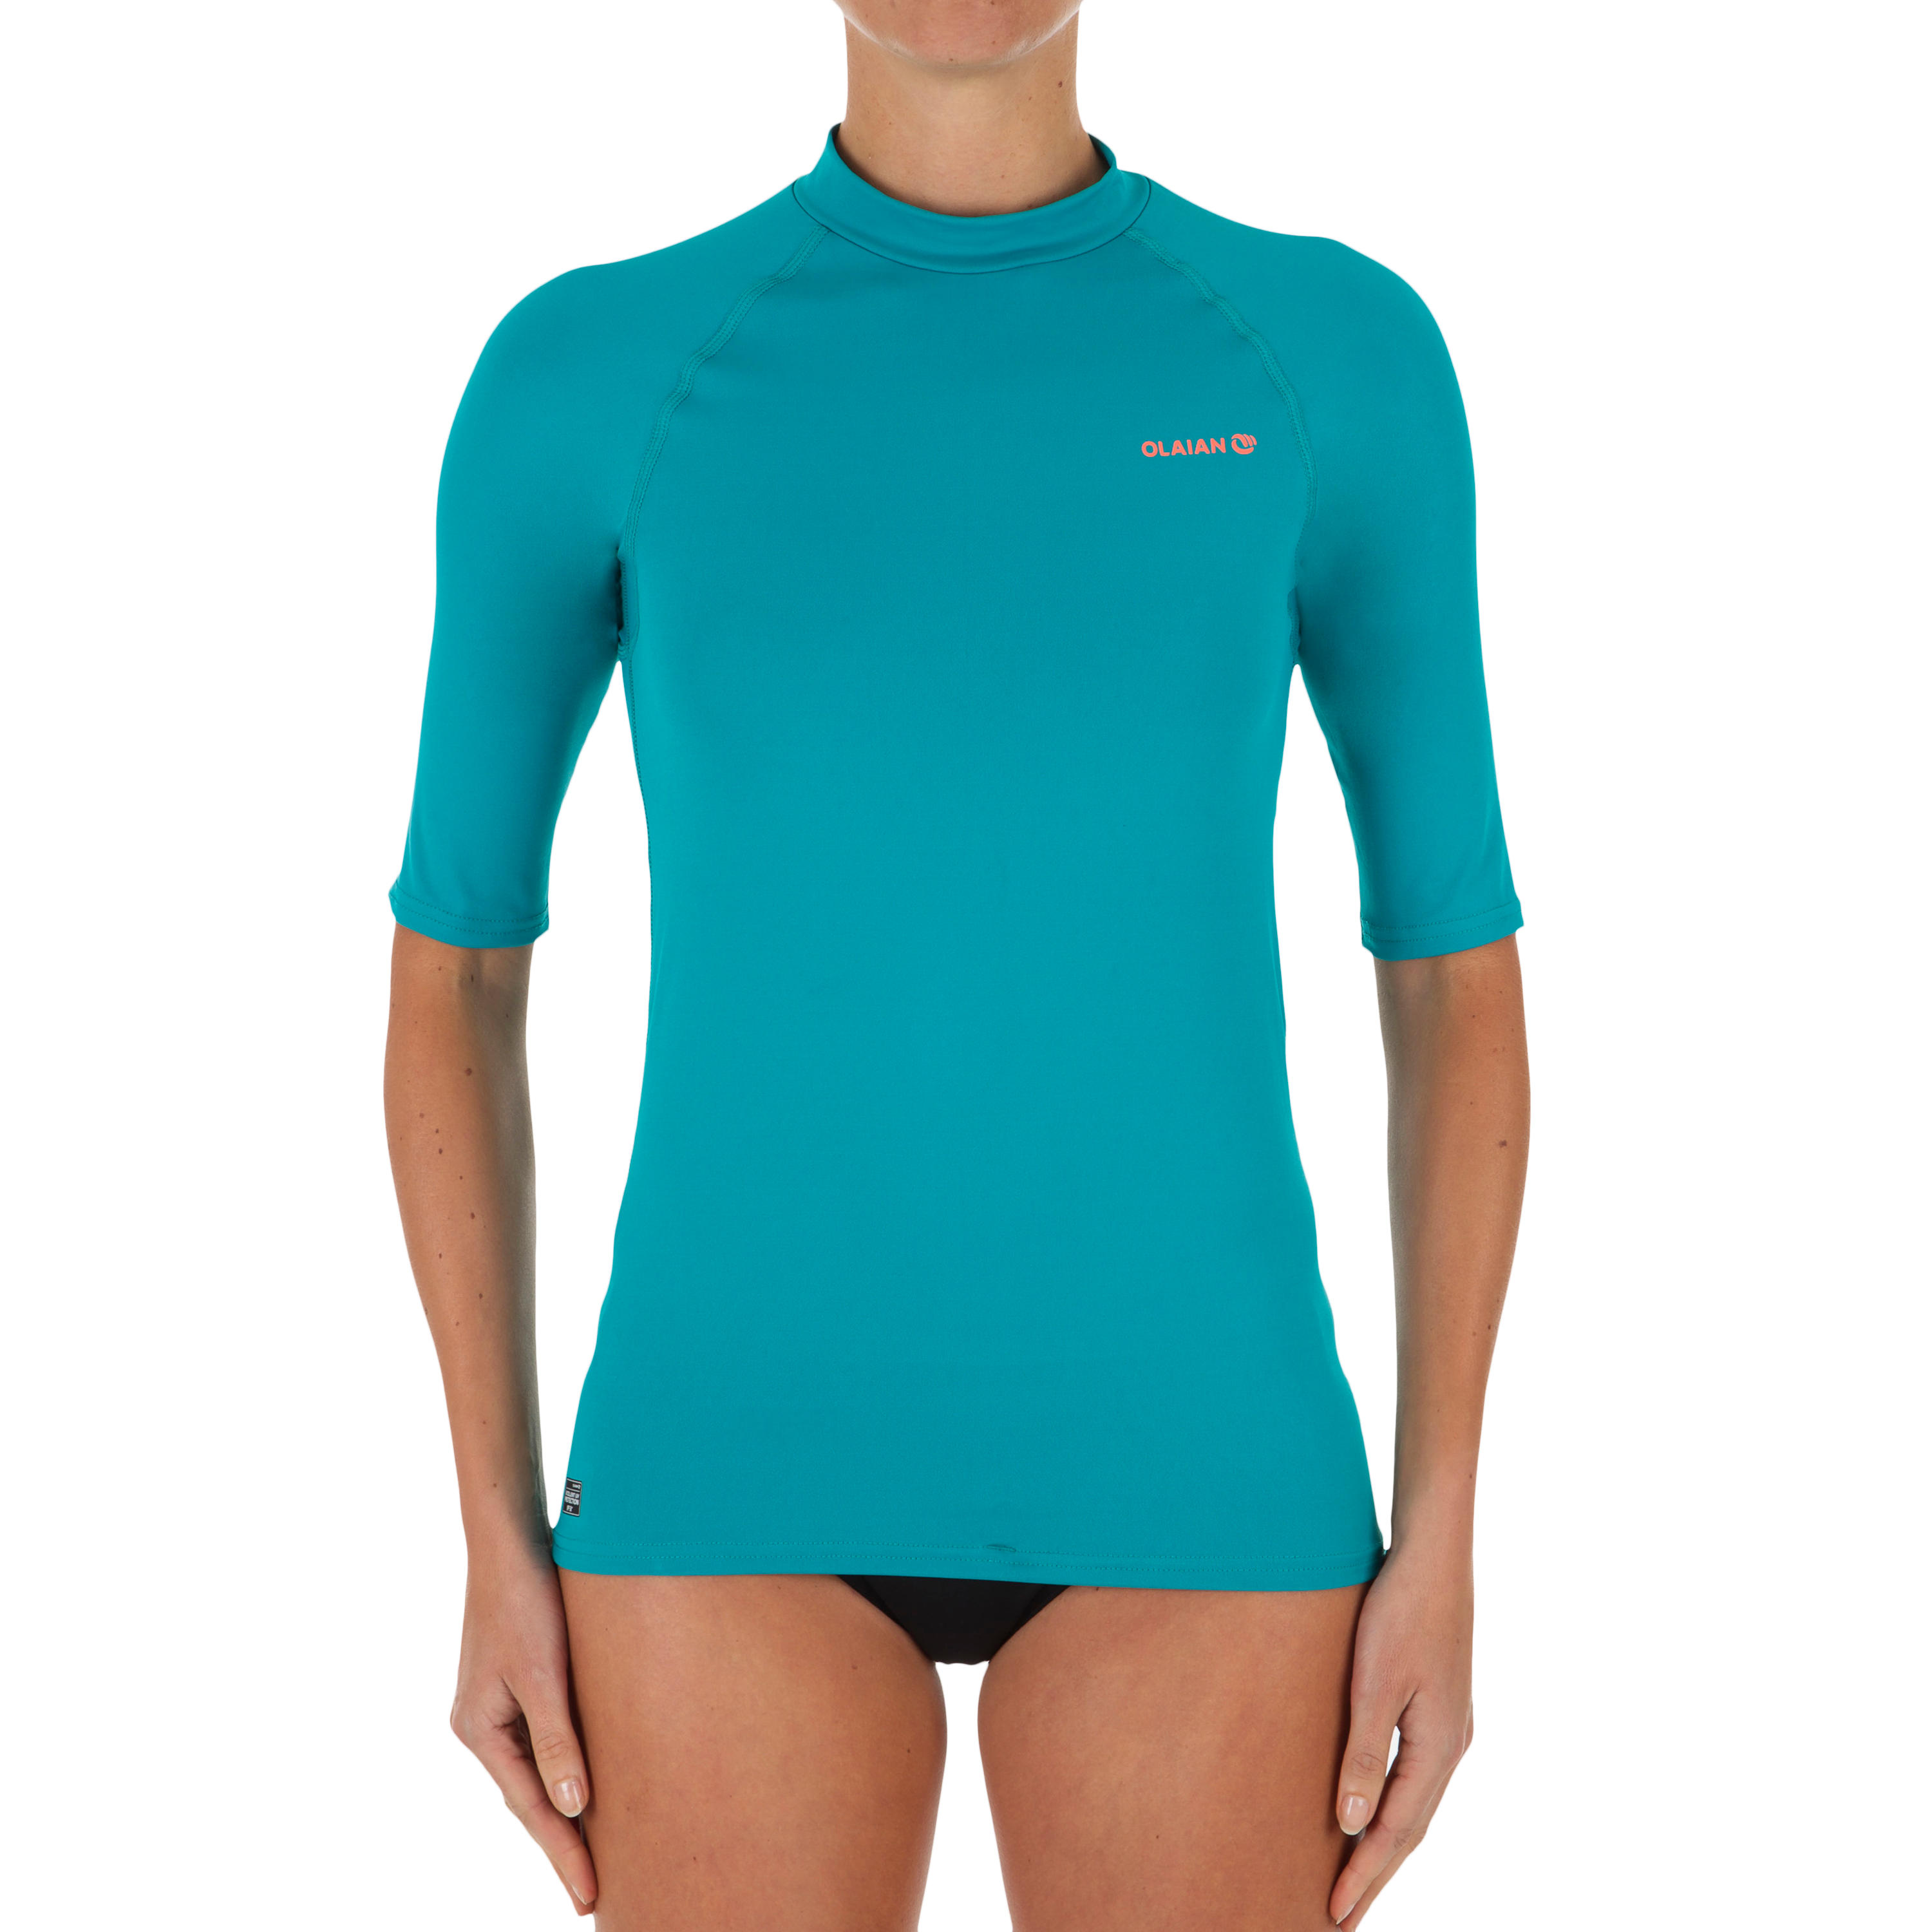 Surf Femme Top Tee Manches Uv Courtes Turquoise 100 Anti Shirt vbyYgf76